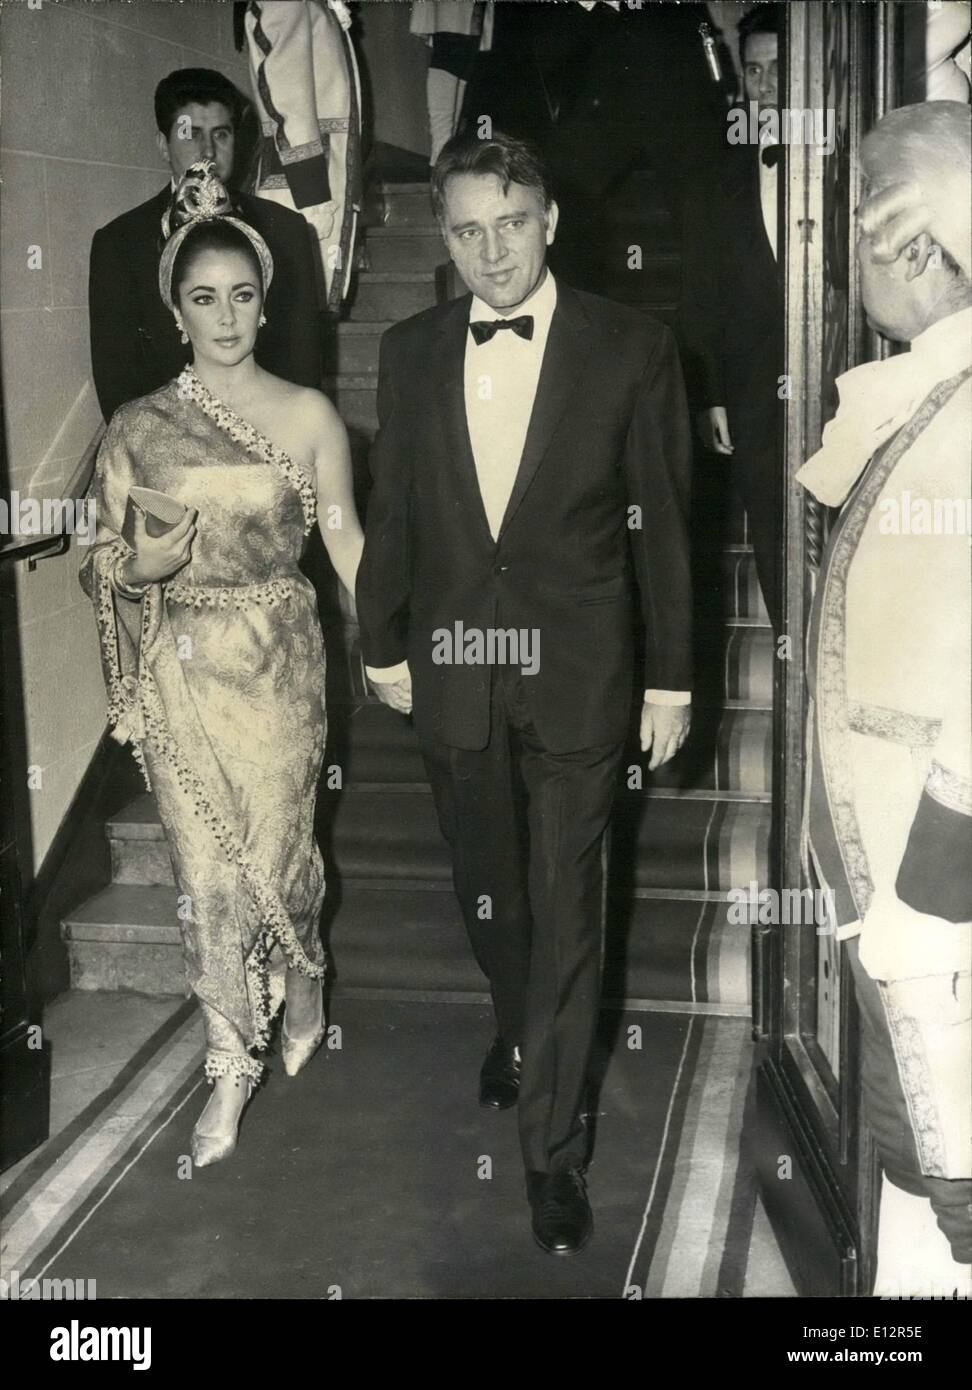 Feb. 25, 2012 - All lady guests wore trousers at Lido Premiere: All lady guests attending the Premiere of the Lido New show wore trousers instead of traditional evening dress, this was an unusual ''stunt'' imagined by the lido directors and an additional attraction of the glamorous show. Liz Taylor as an exception did not wear trousers but a gorgeous sari. She is seen accompanied by Richard Burton. - Stock Image